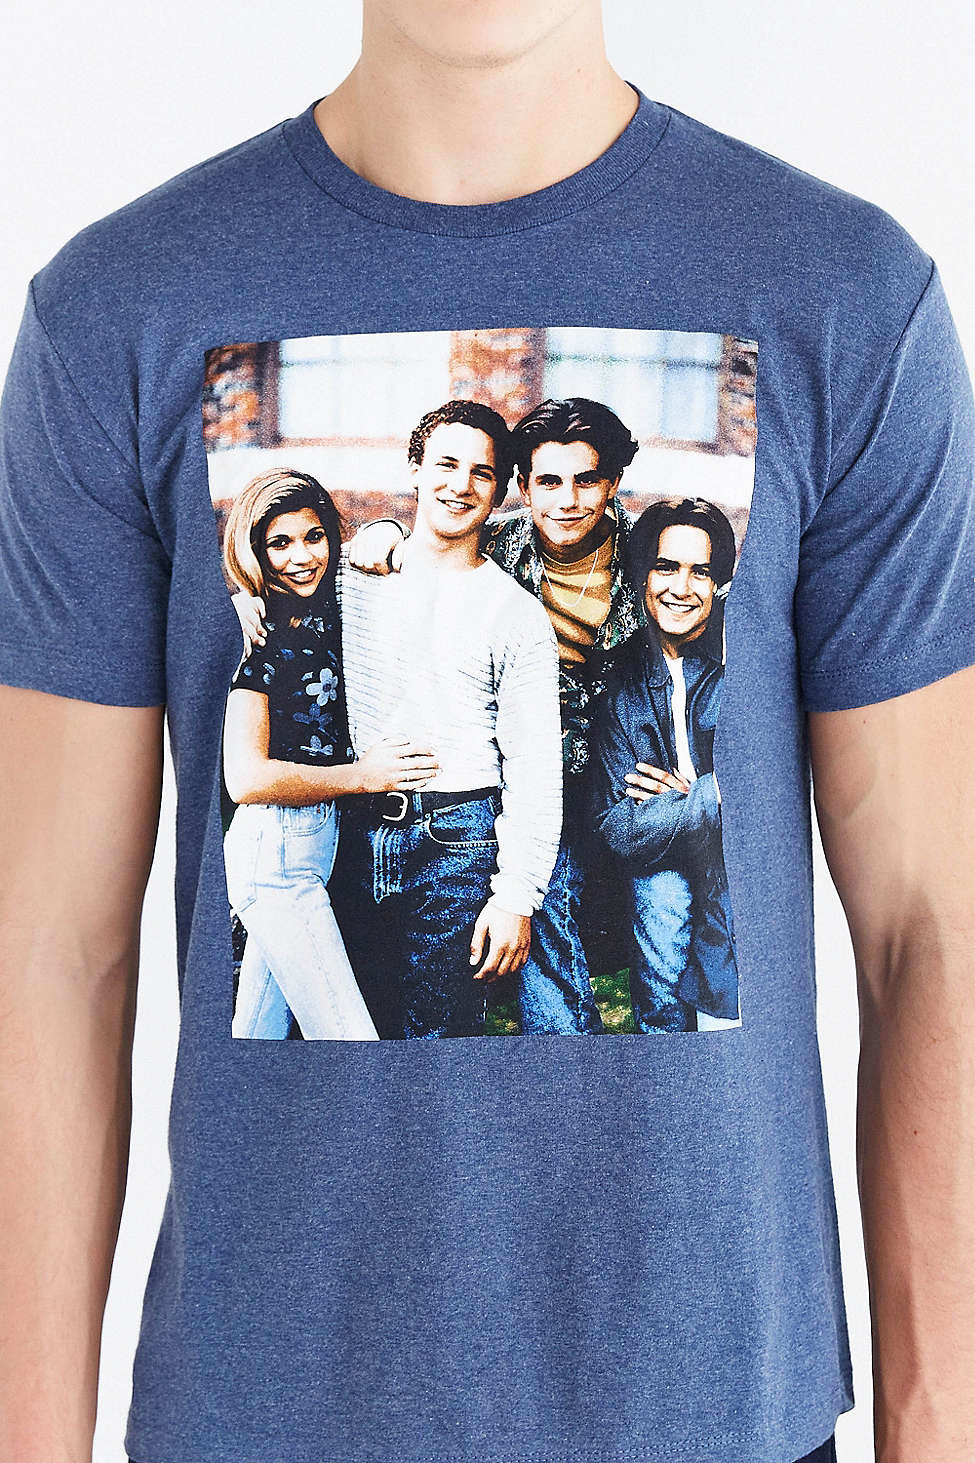 Urban outfitters boy meets world group tee in blue for men for Best dress shirts in the world